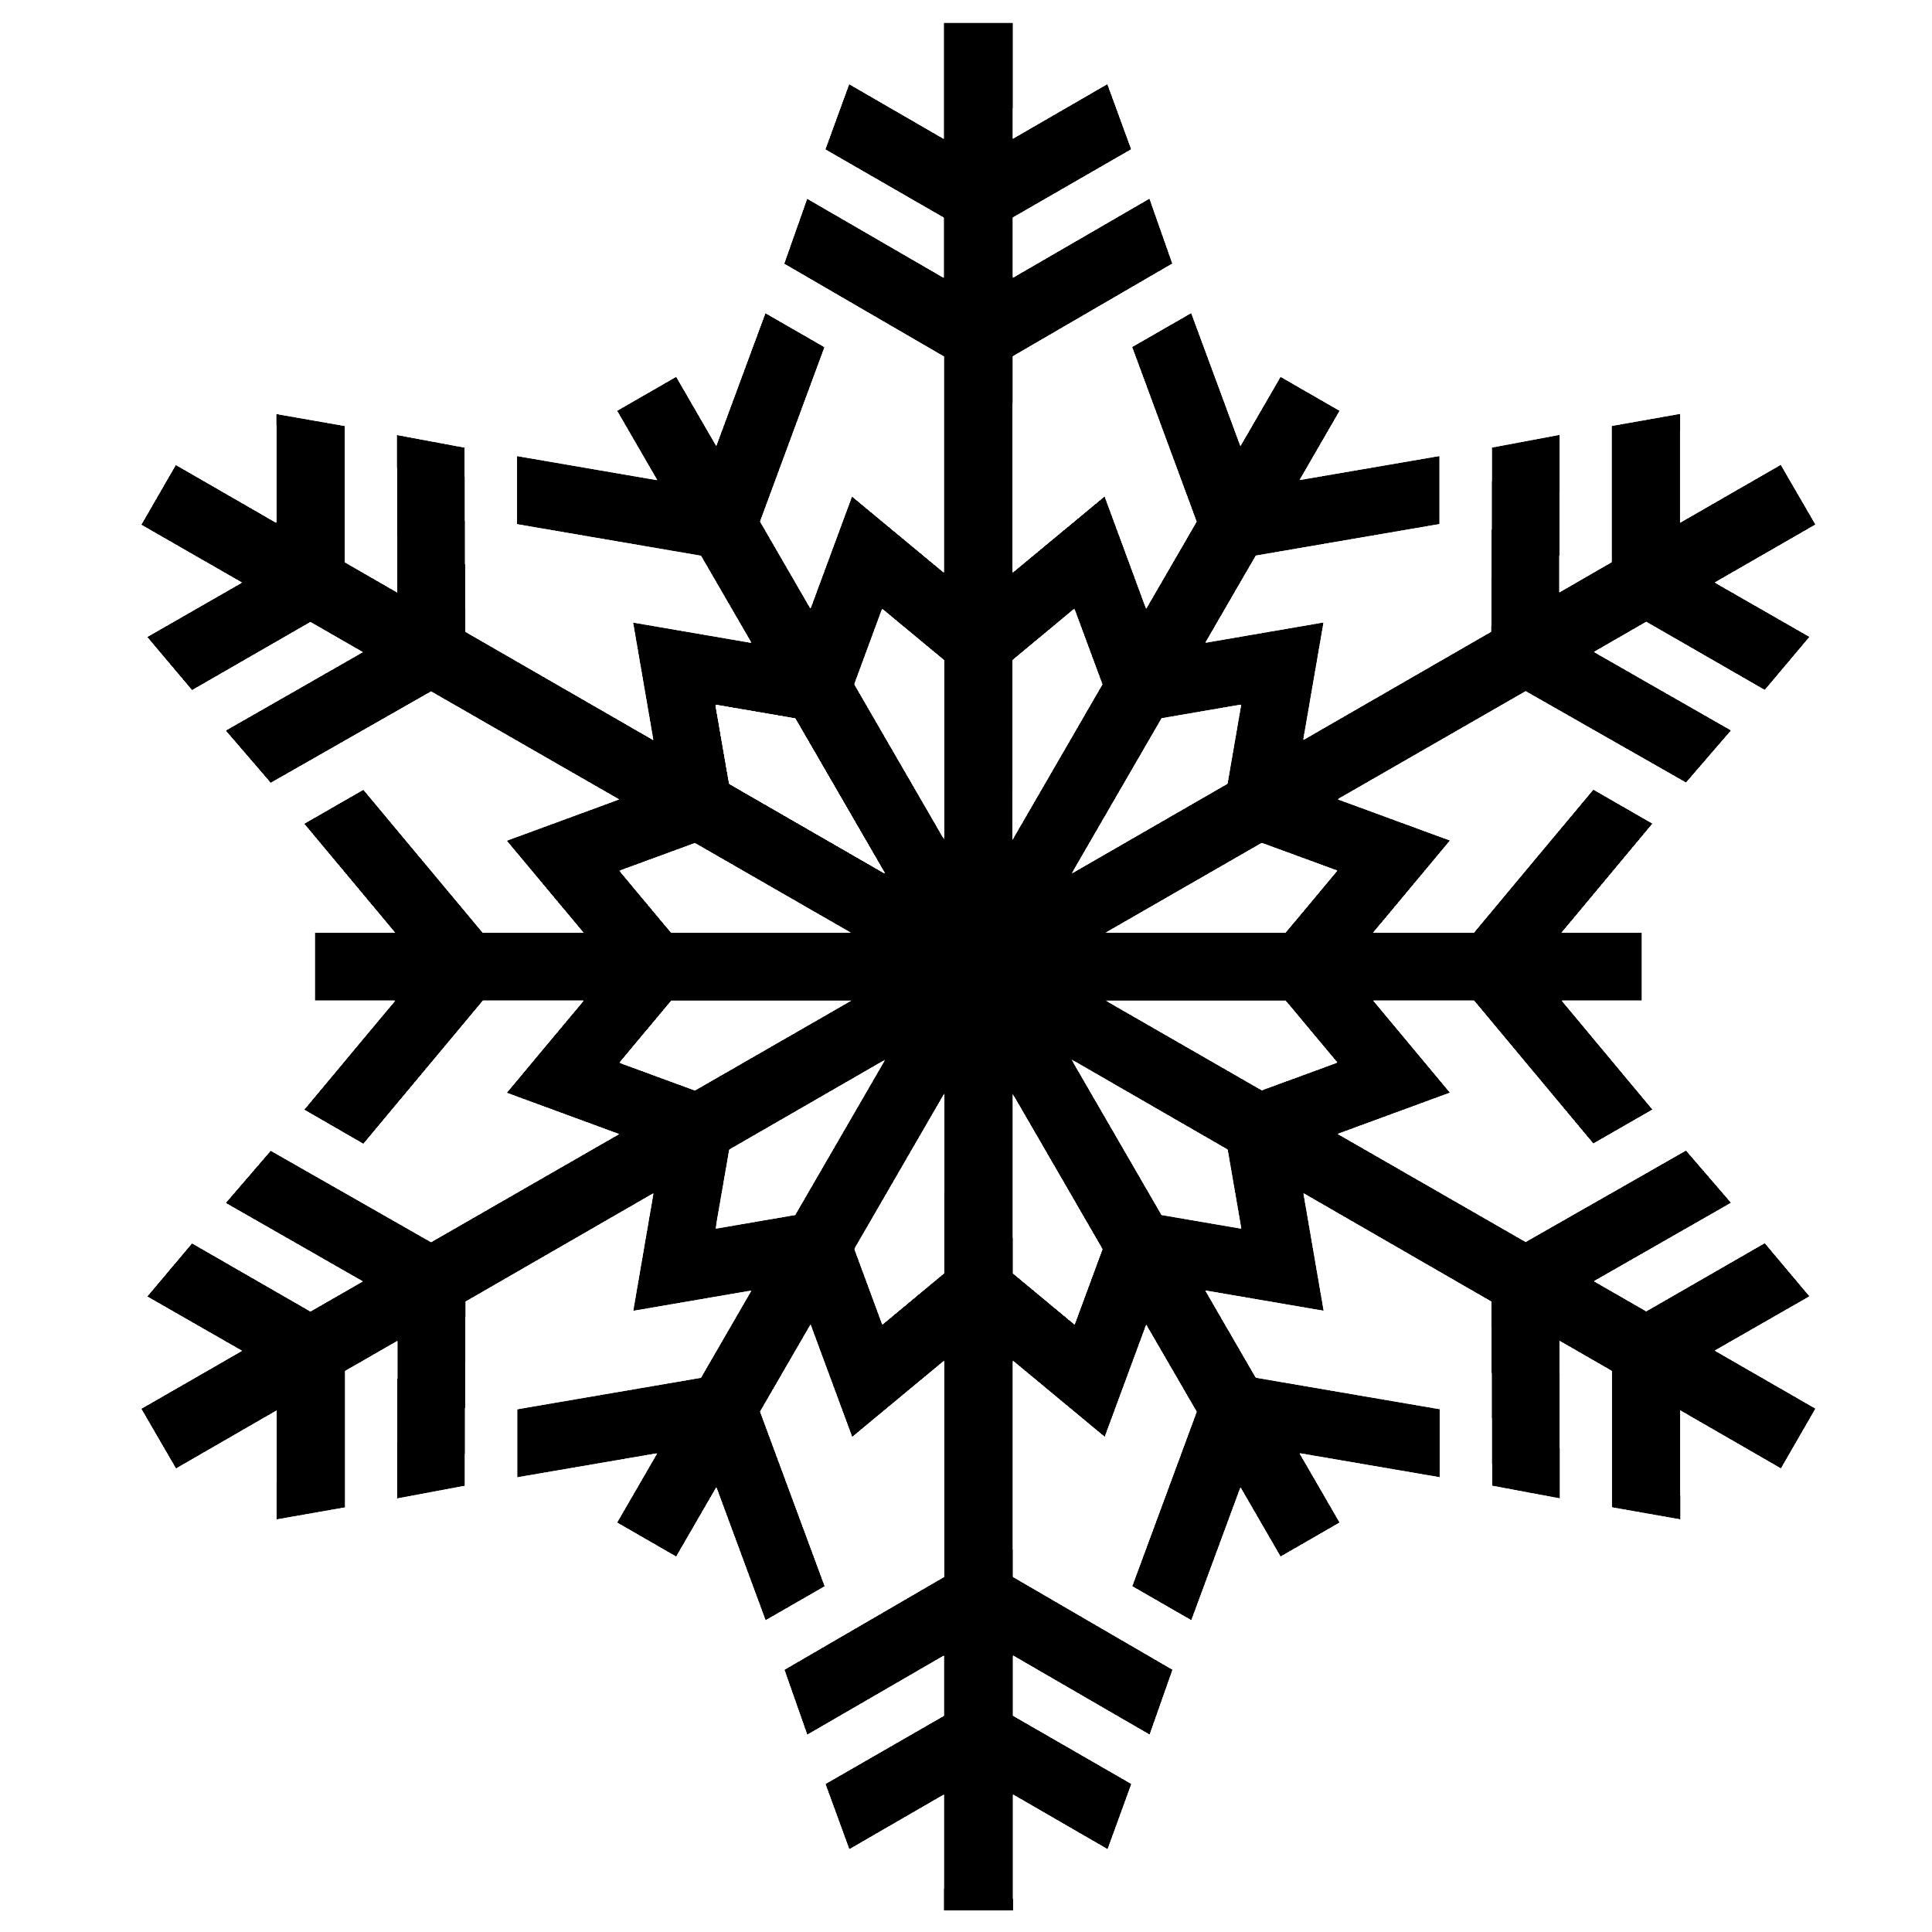 retirement is like a snowflake